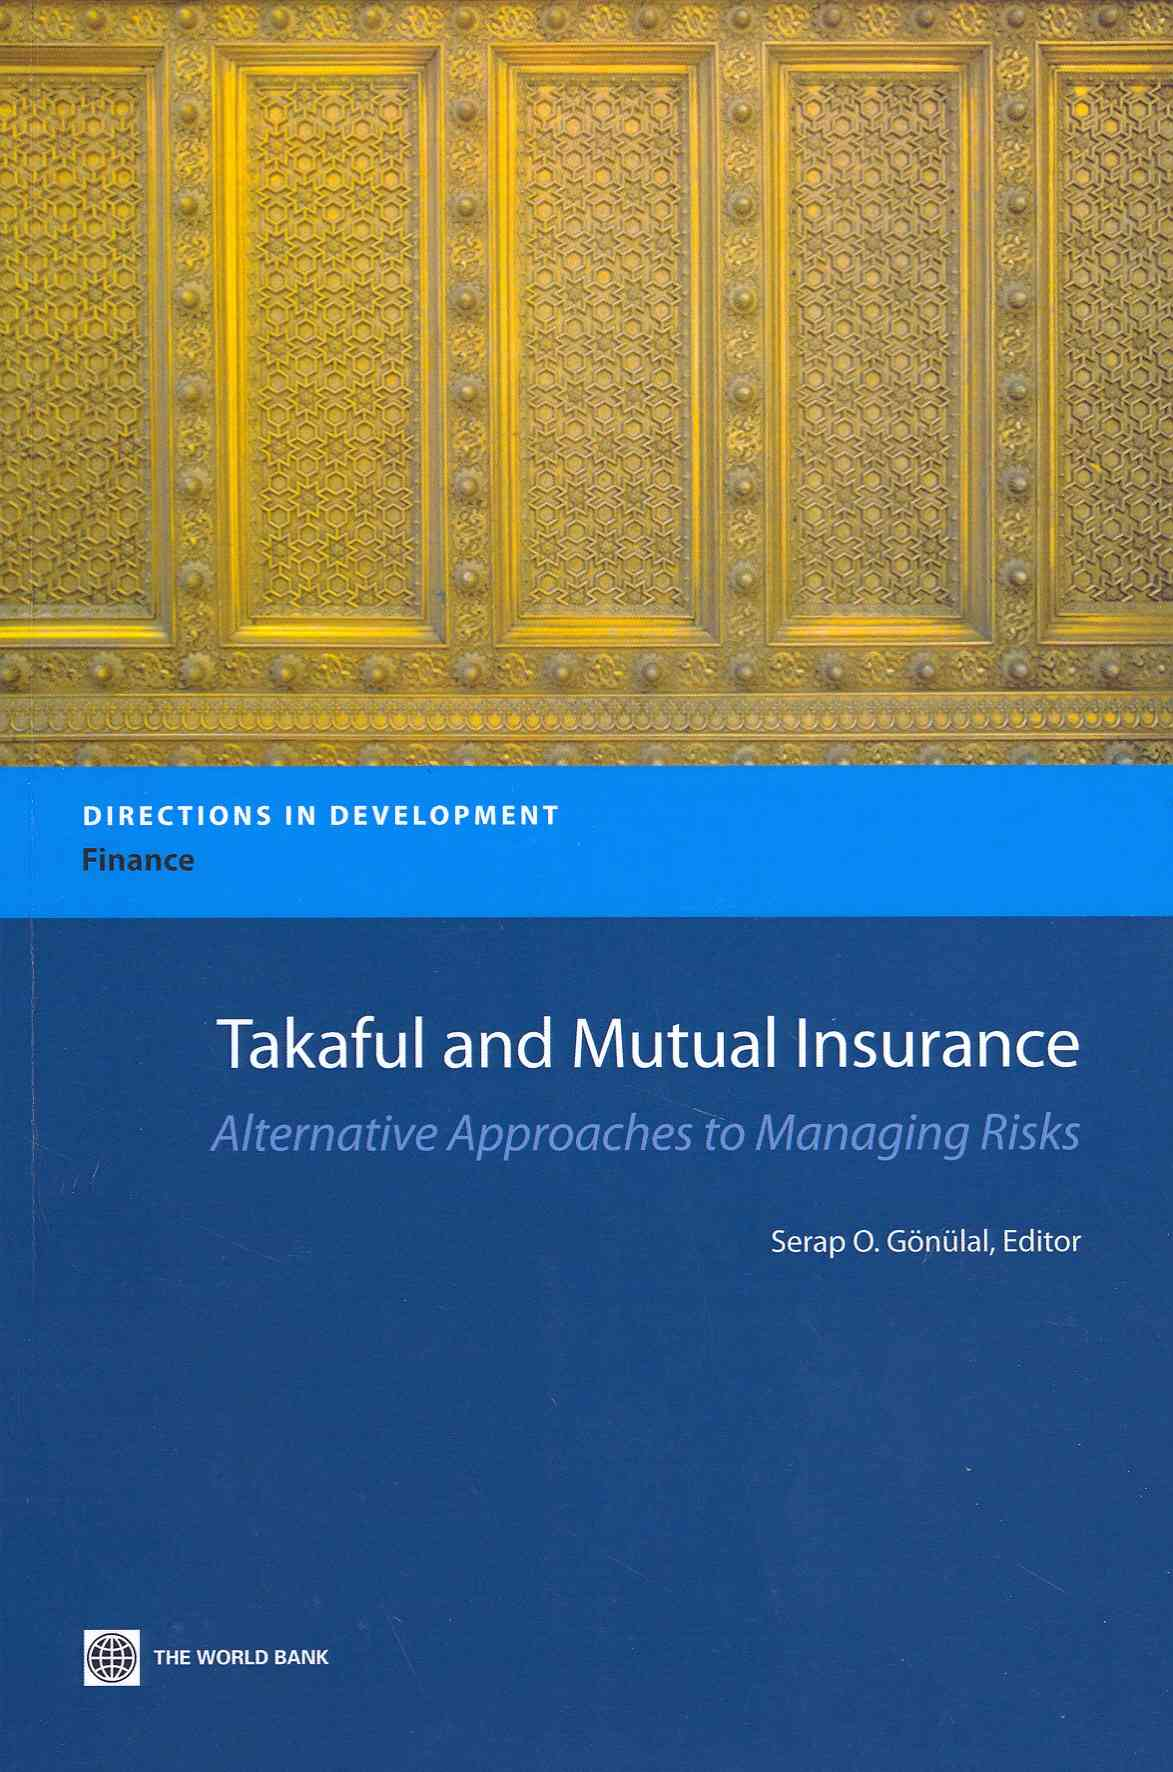 Takaful and Mutual Insurance: Alternative Approaches to Managing Risks (Paperback)